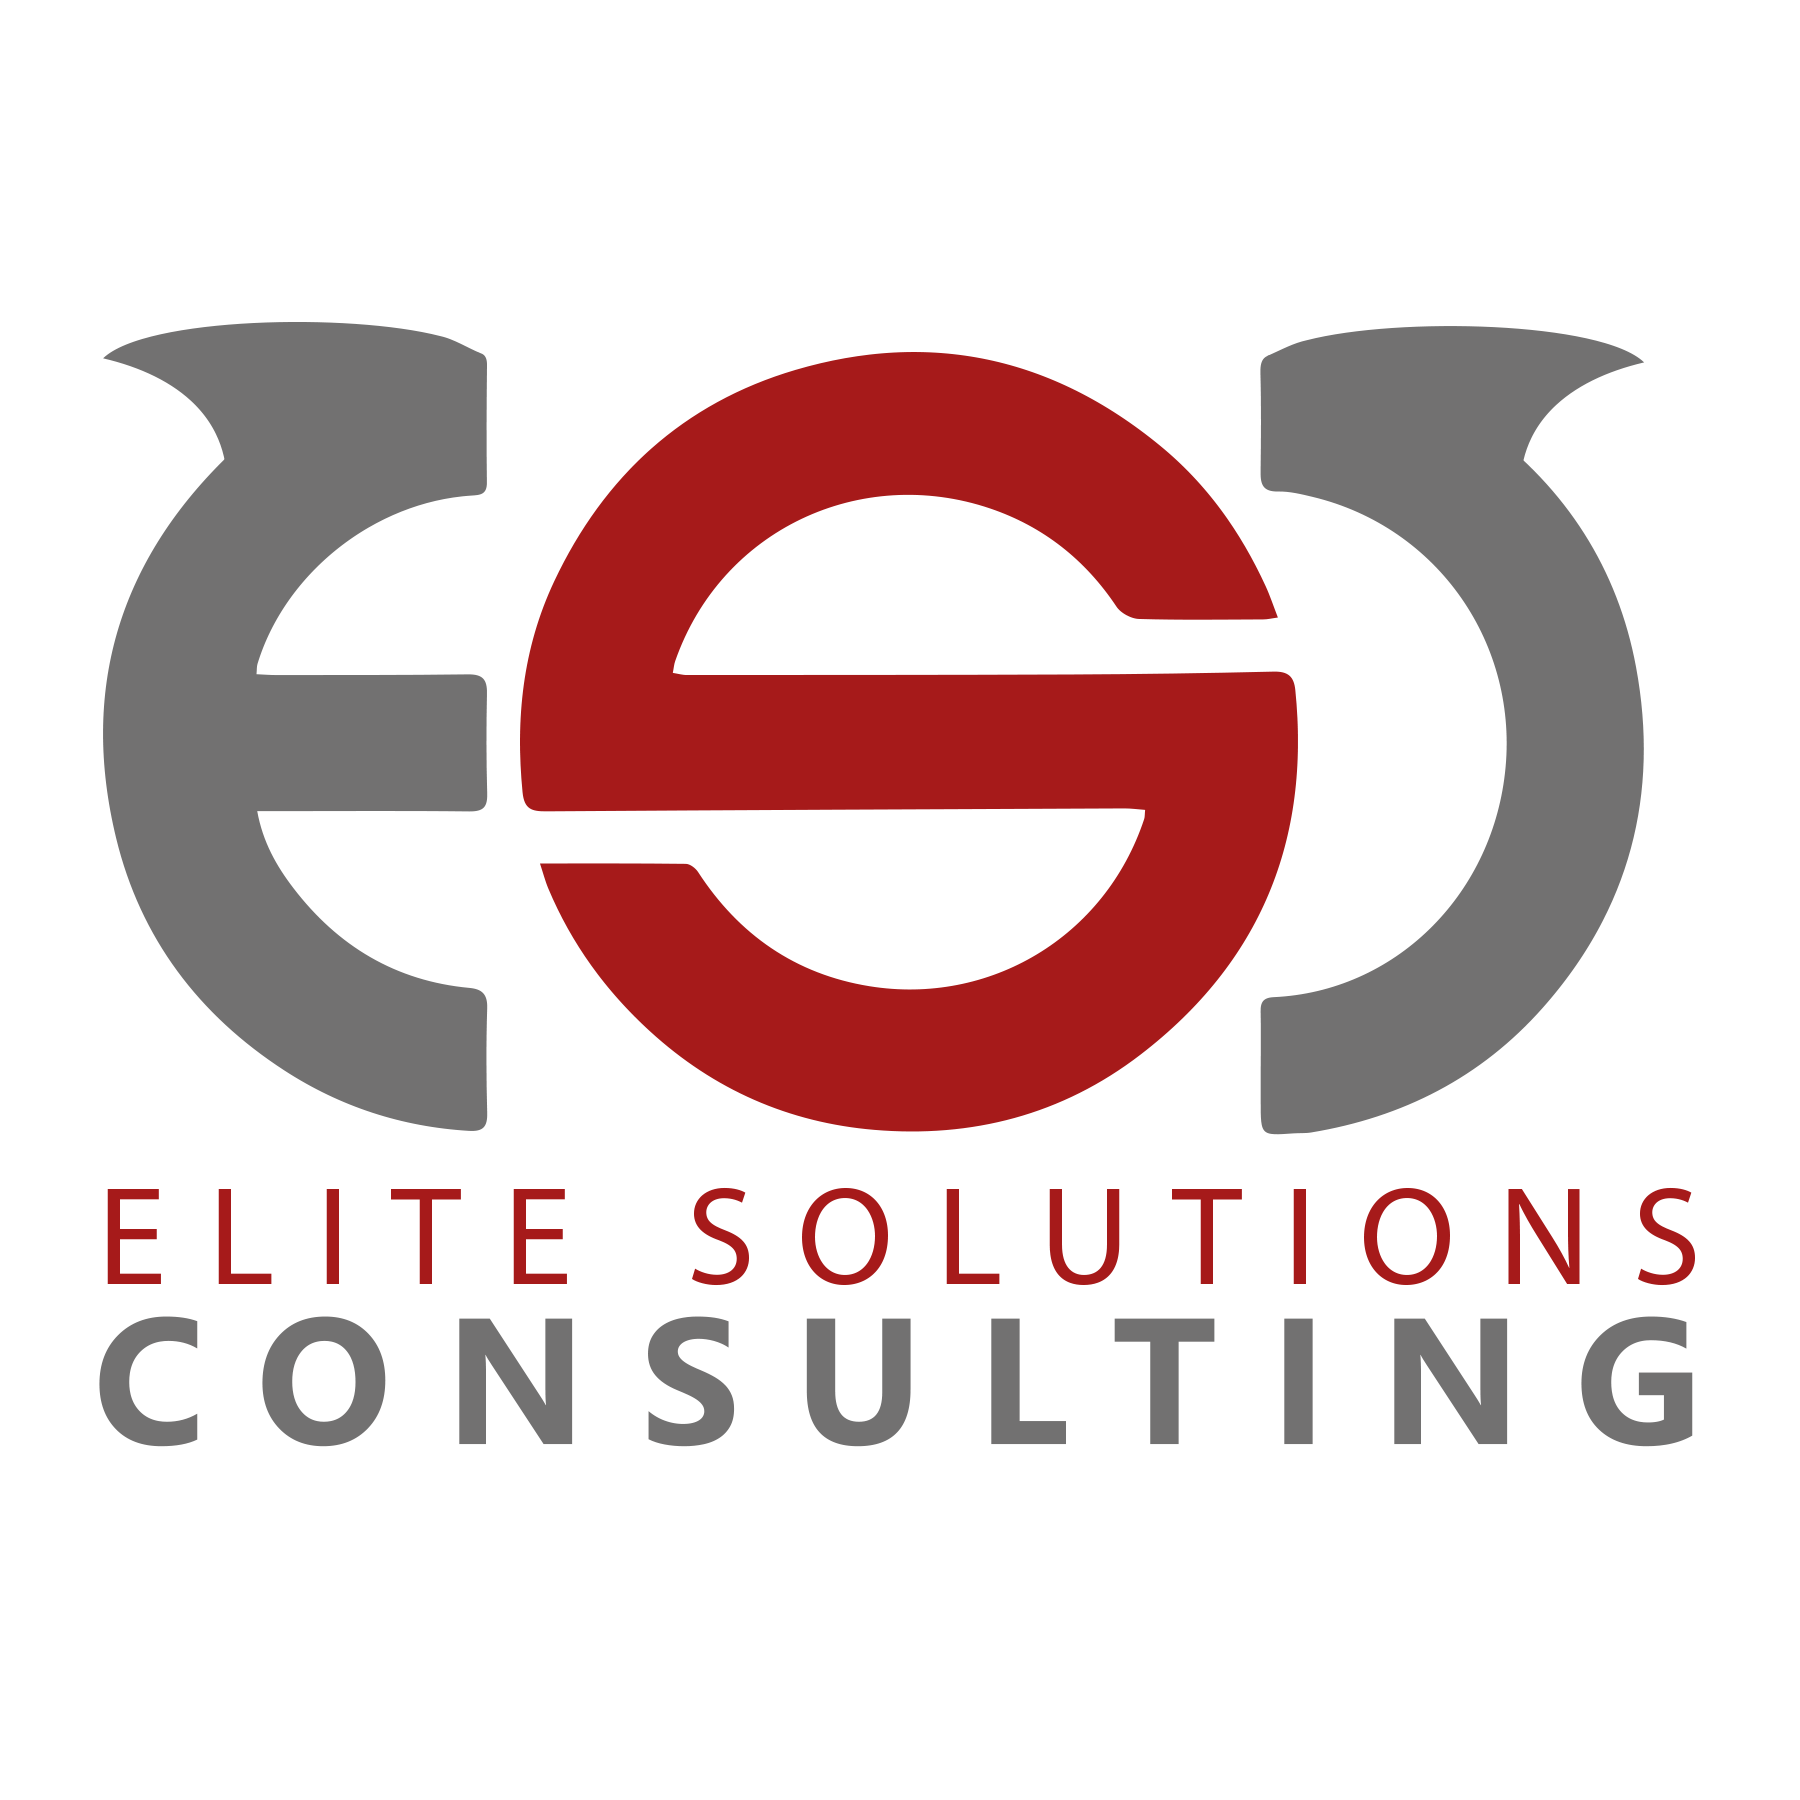 ELITE SOLUTIONS CONSULTING